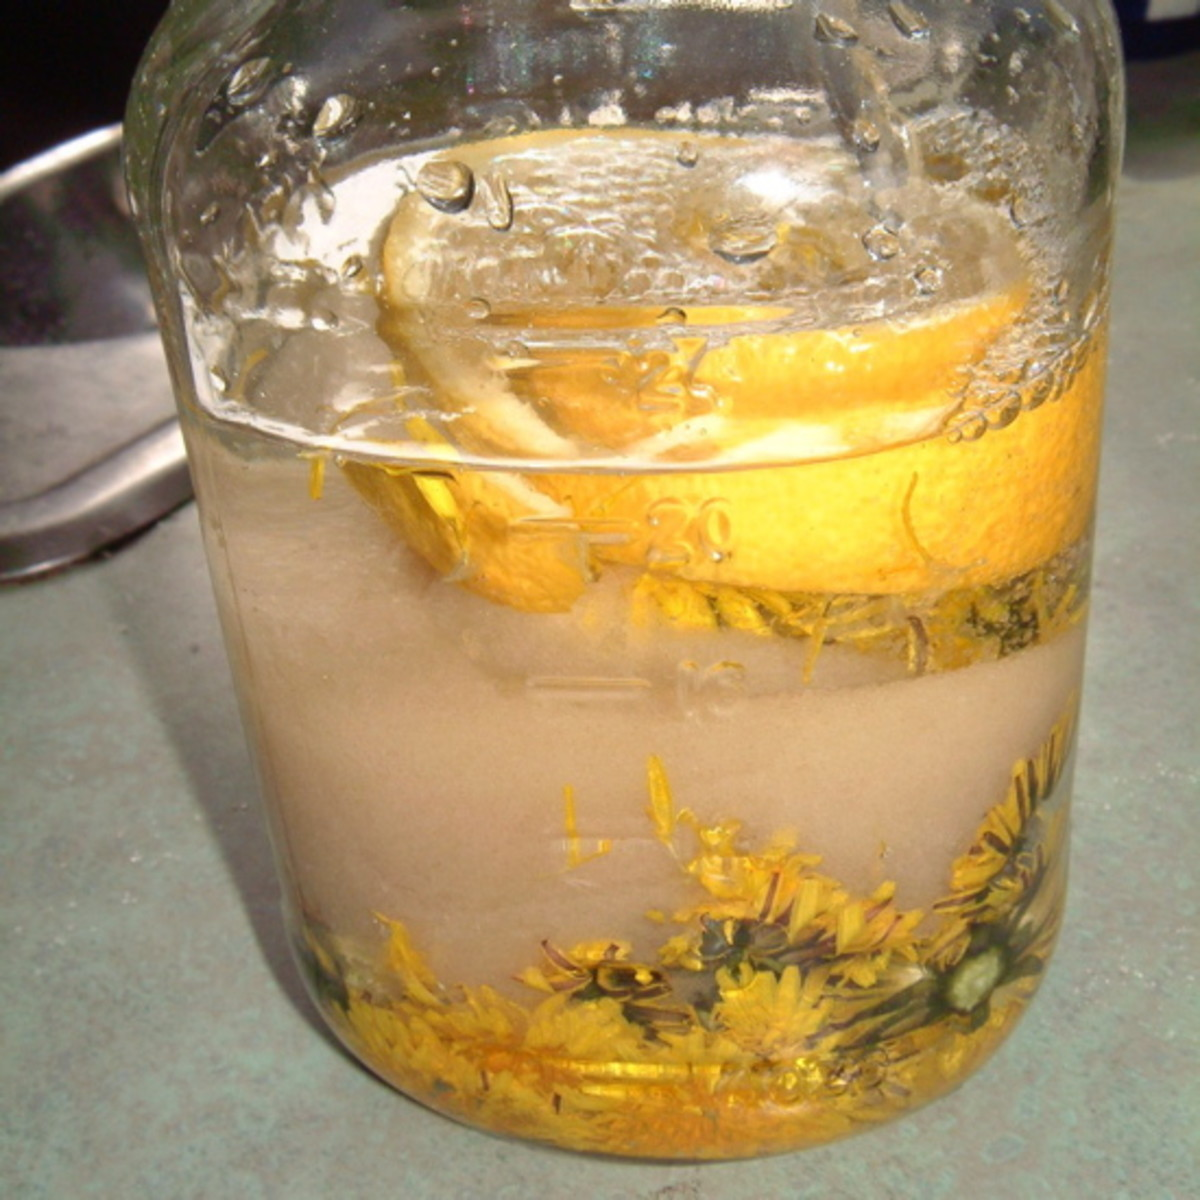 Adding sugar, lemon and vodka